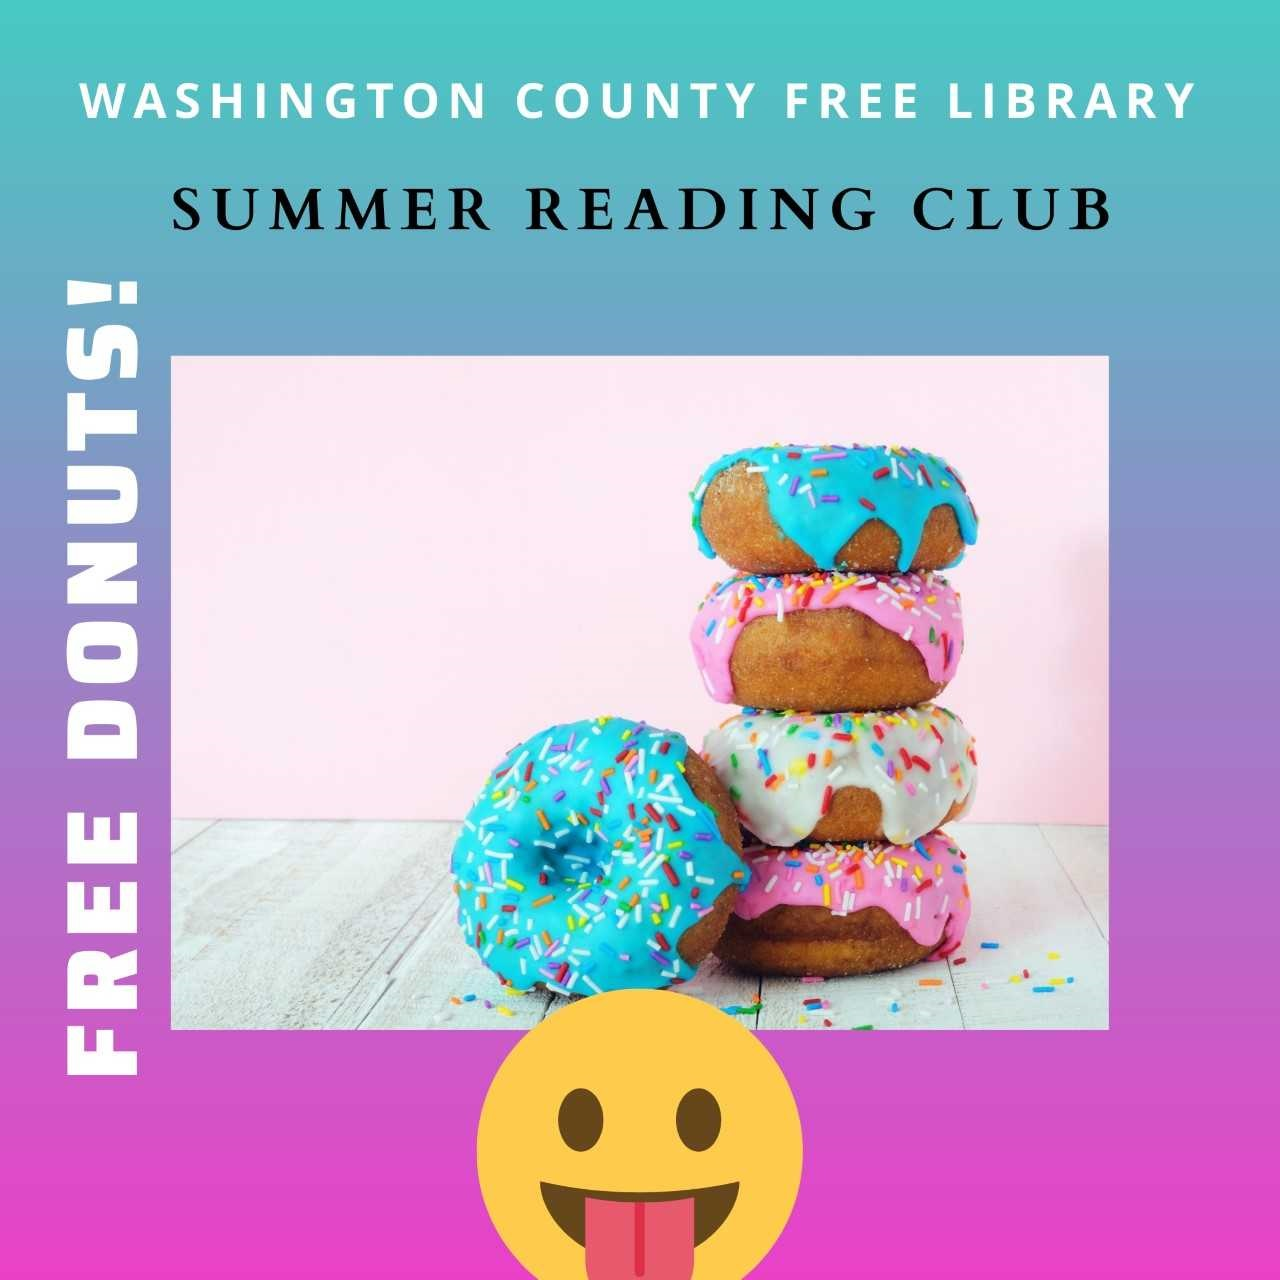 Donuts stacked with WCFL Summer Reading Club